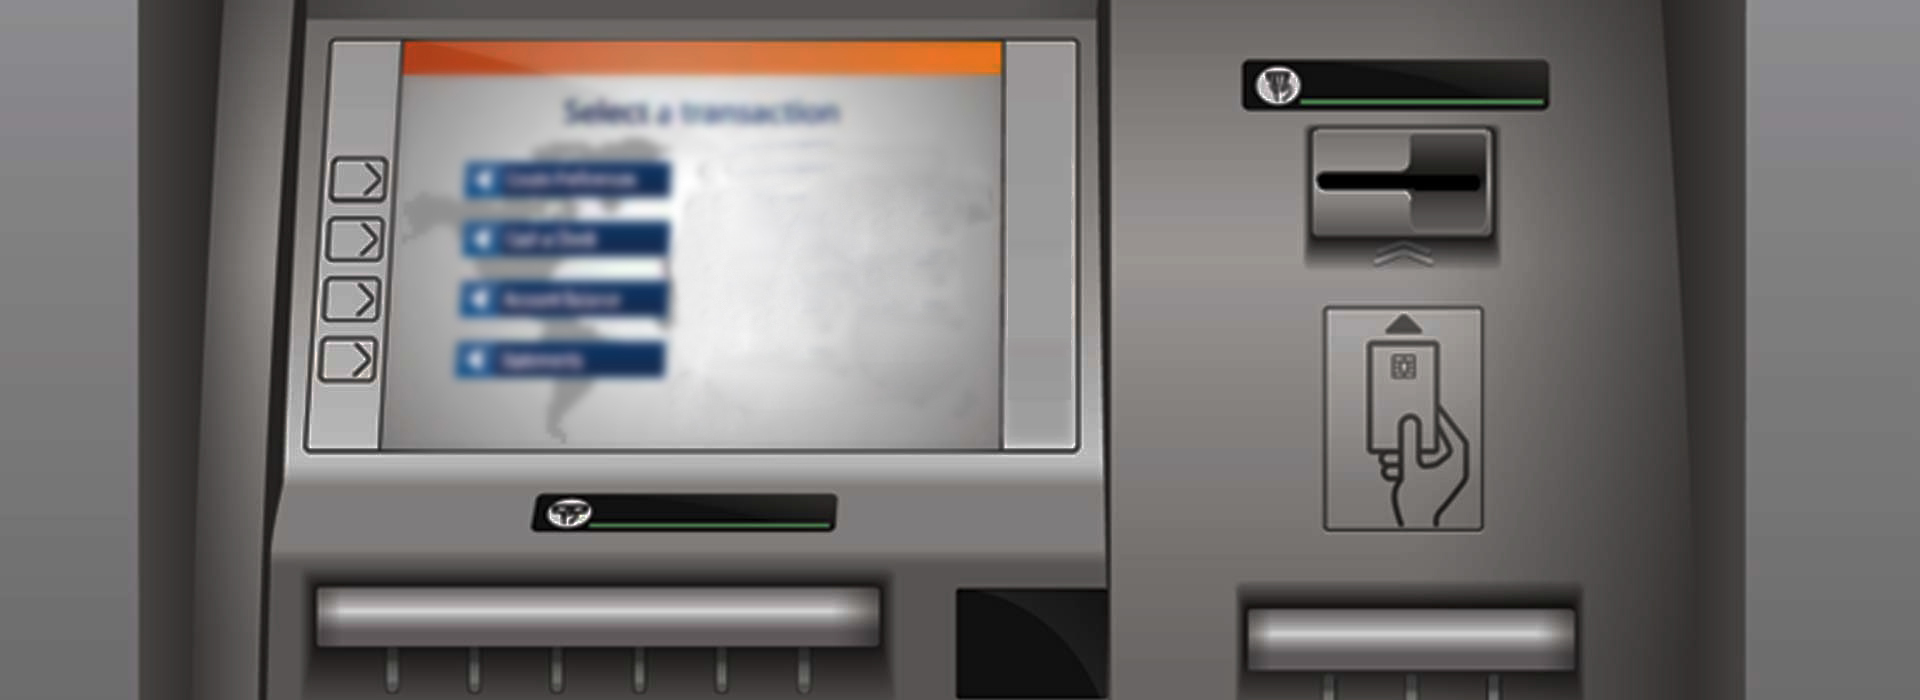 ATM, cash machine, choose, screen